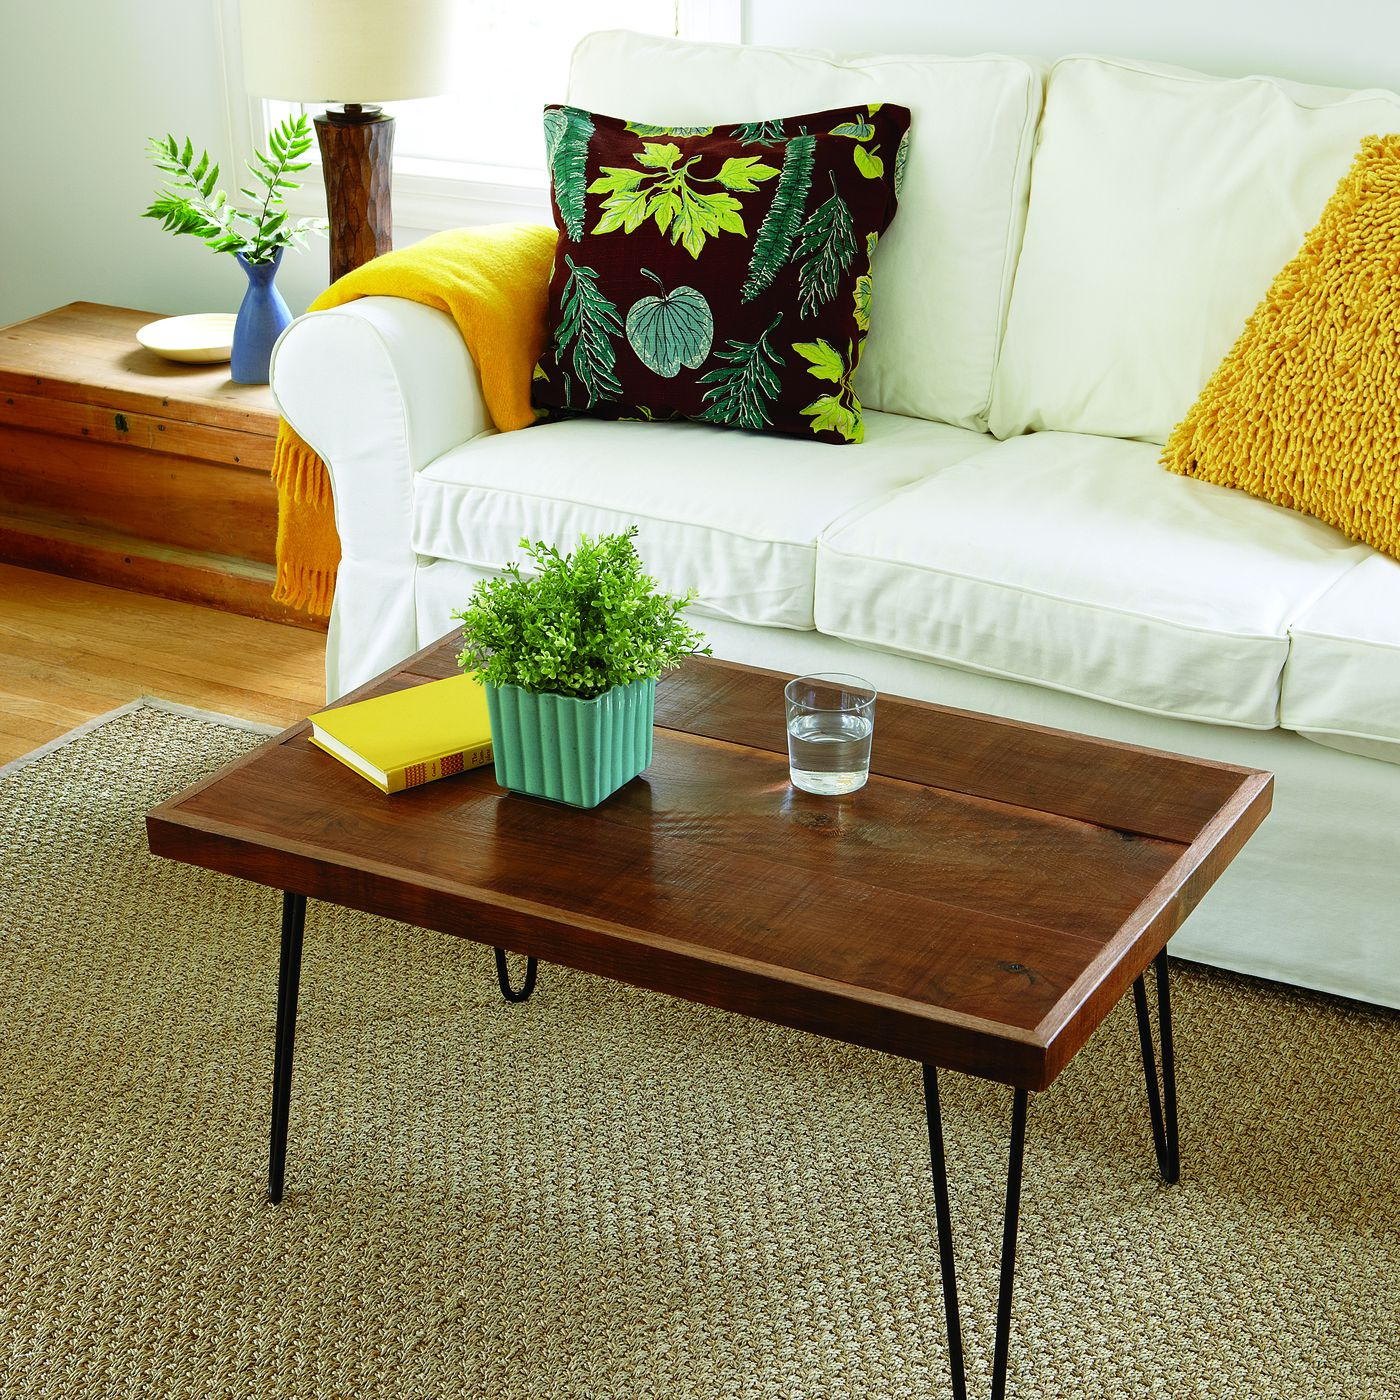 How To Build A Hairpin Leg Coffee Table This Old House